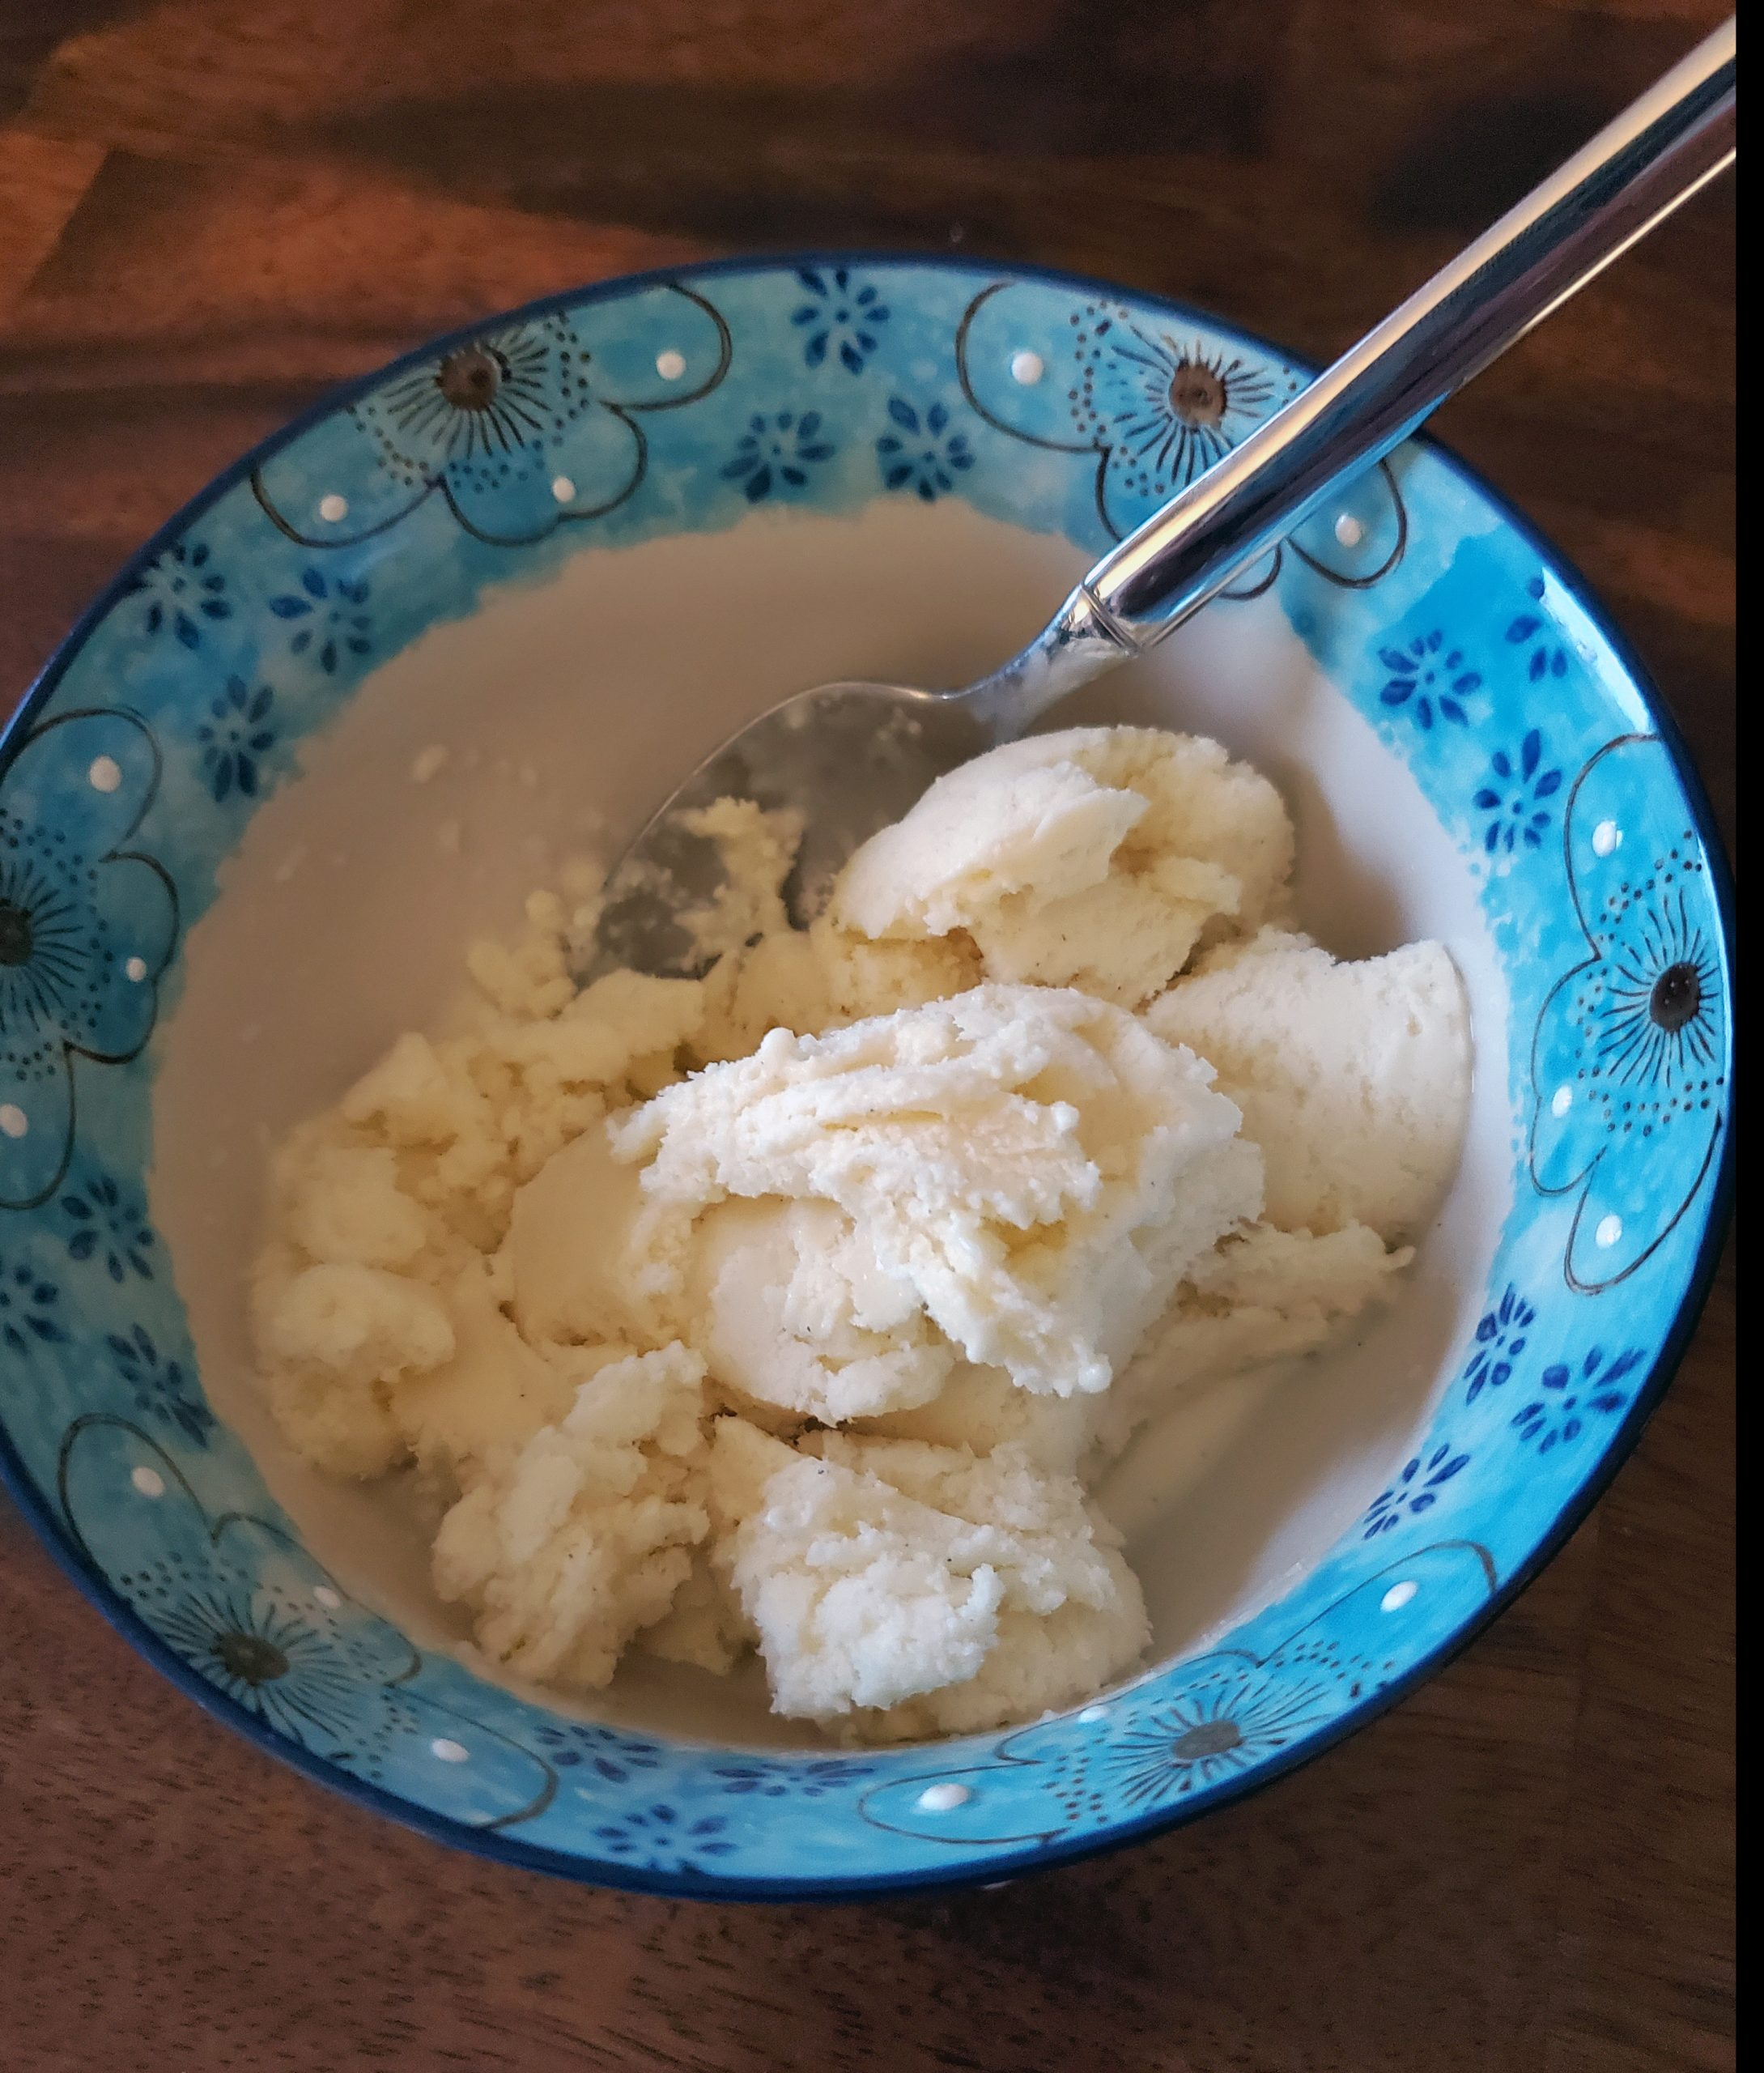 butterbeer ice cream with spoon in blue bowl